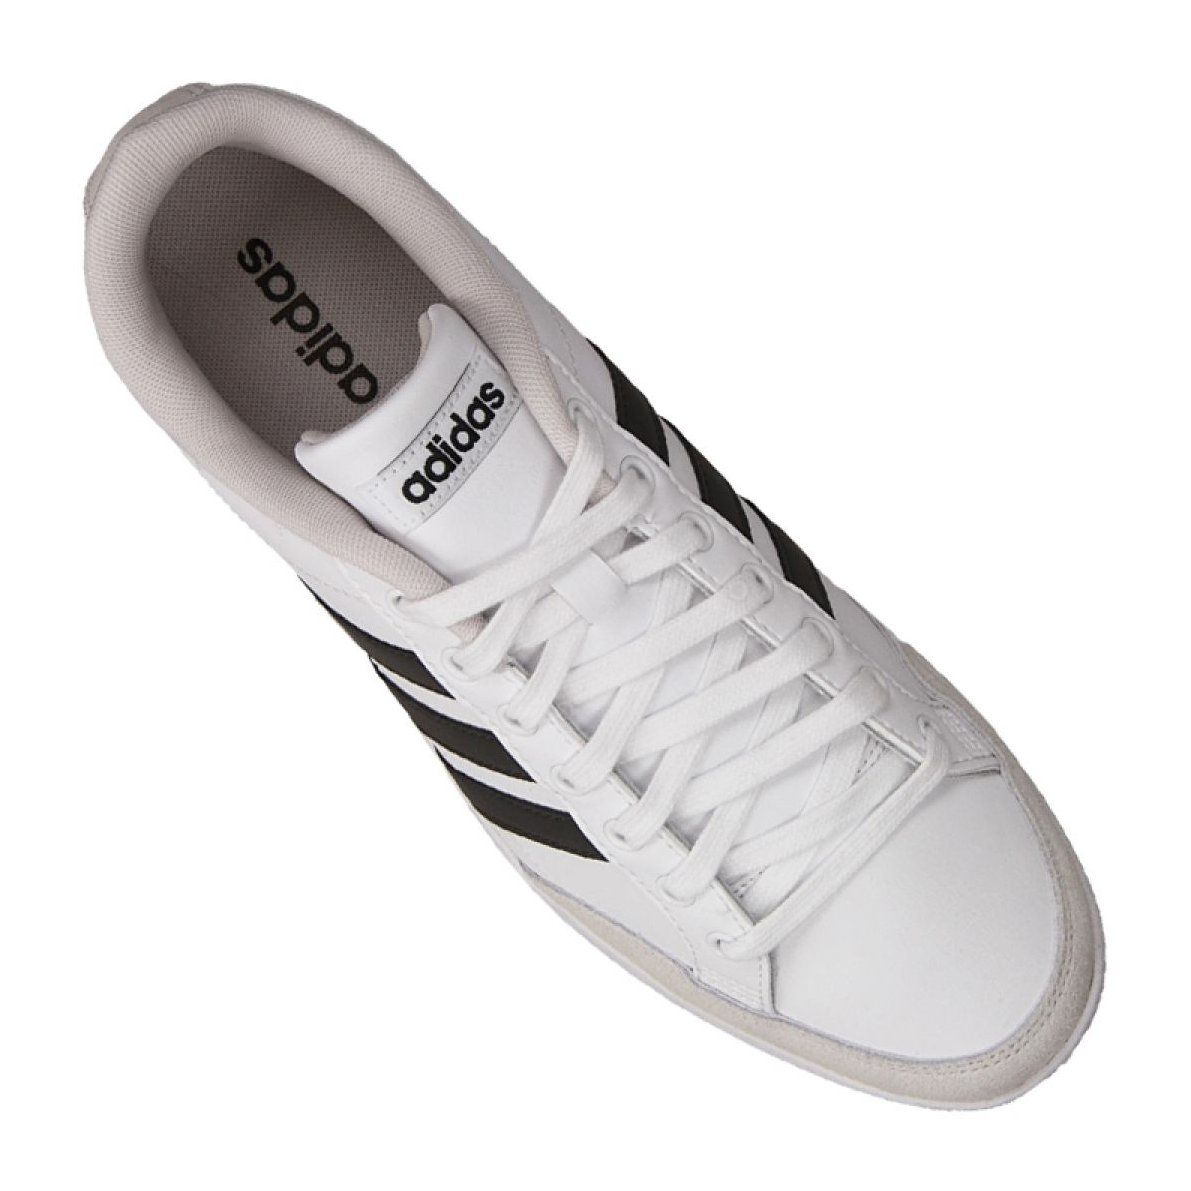 Buty Adidas Caflaire M Db1347 Biale Shoes Sports Shoes Adidas Designer Shoes